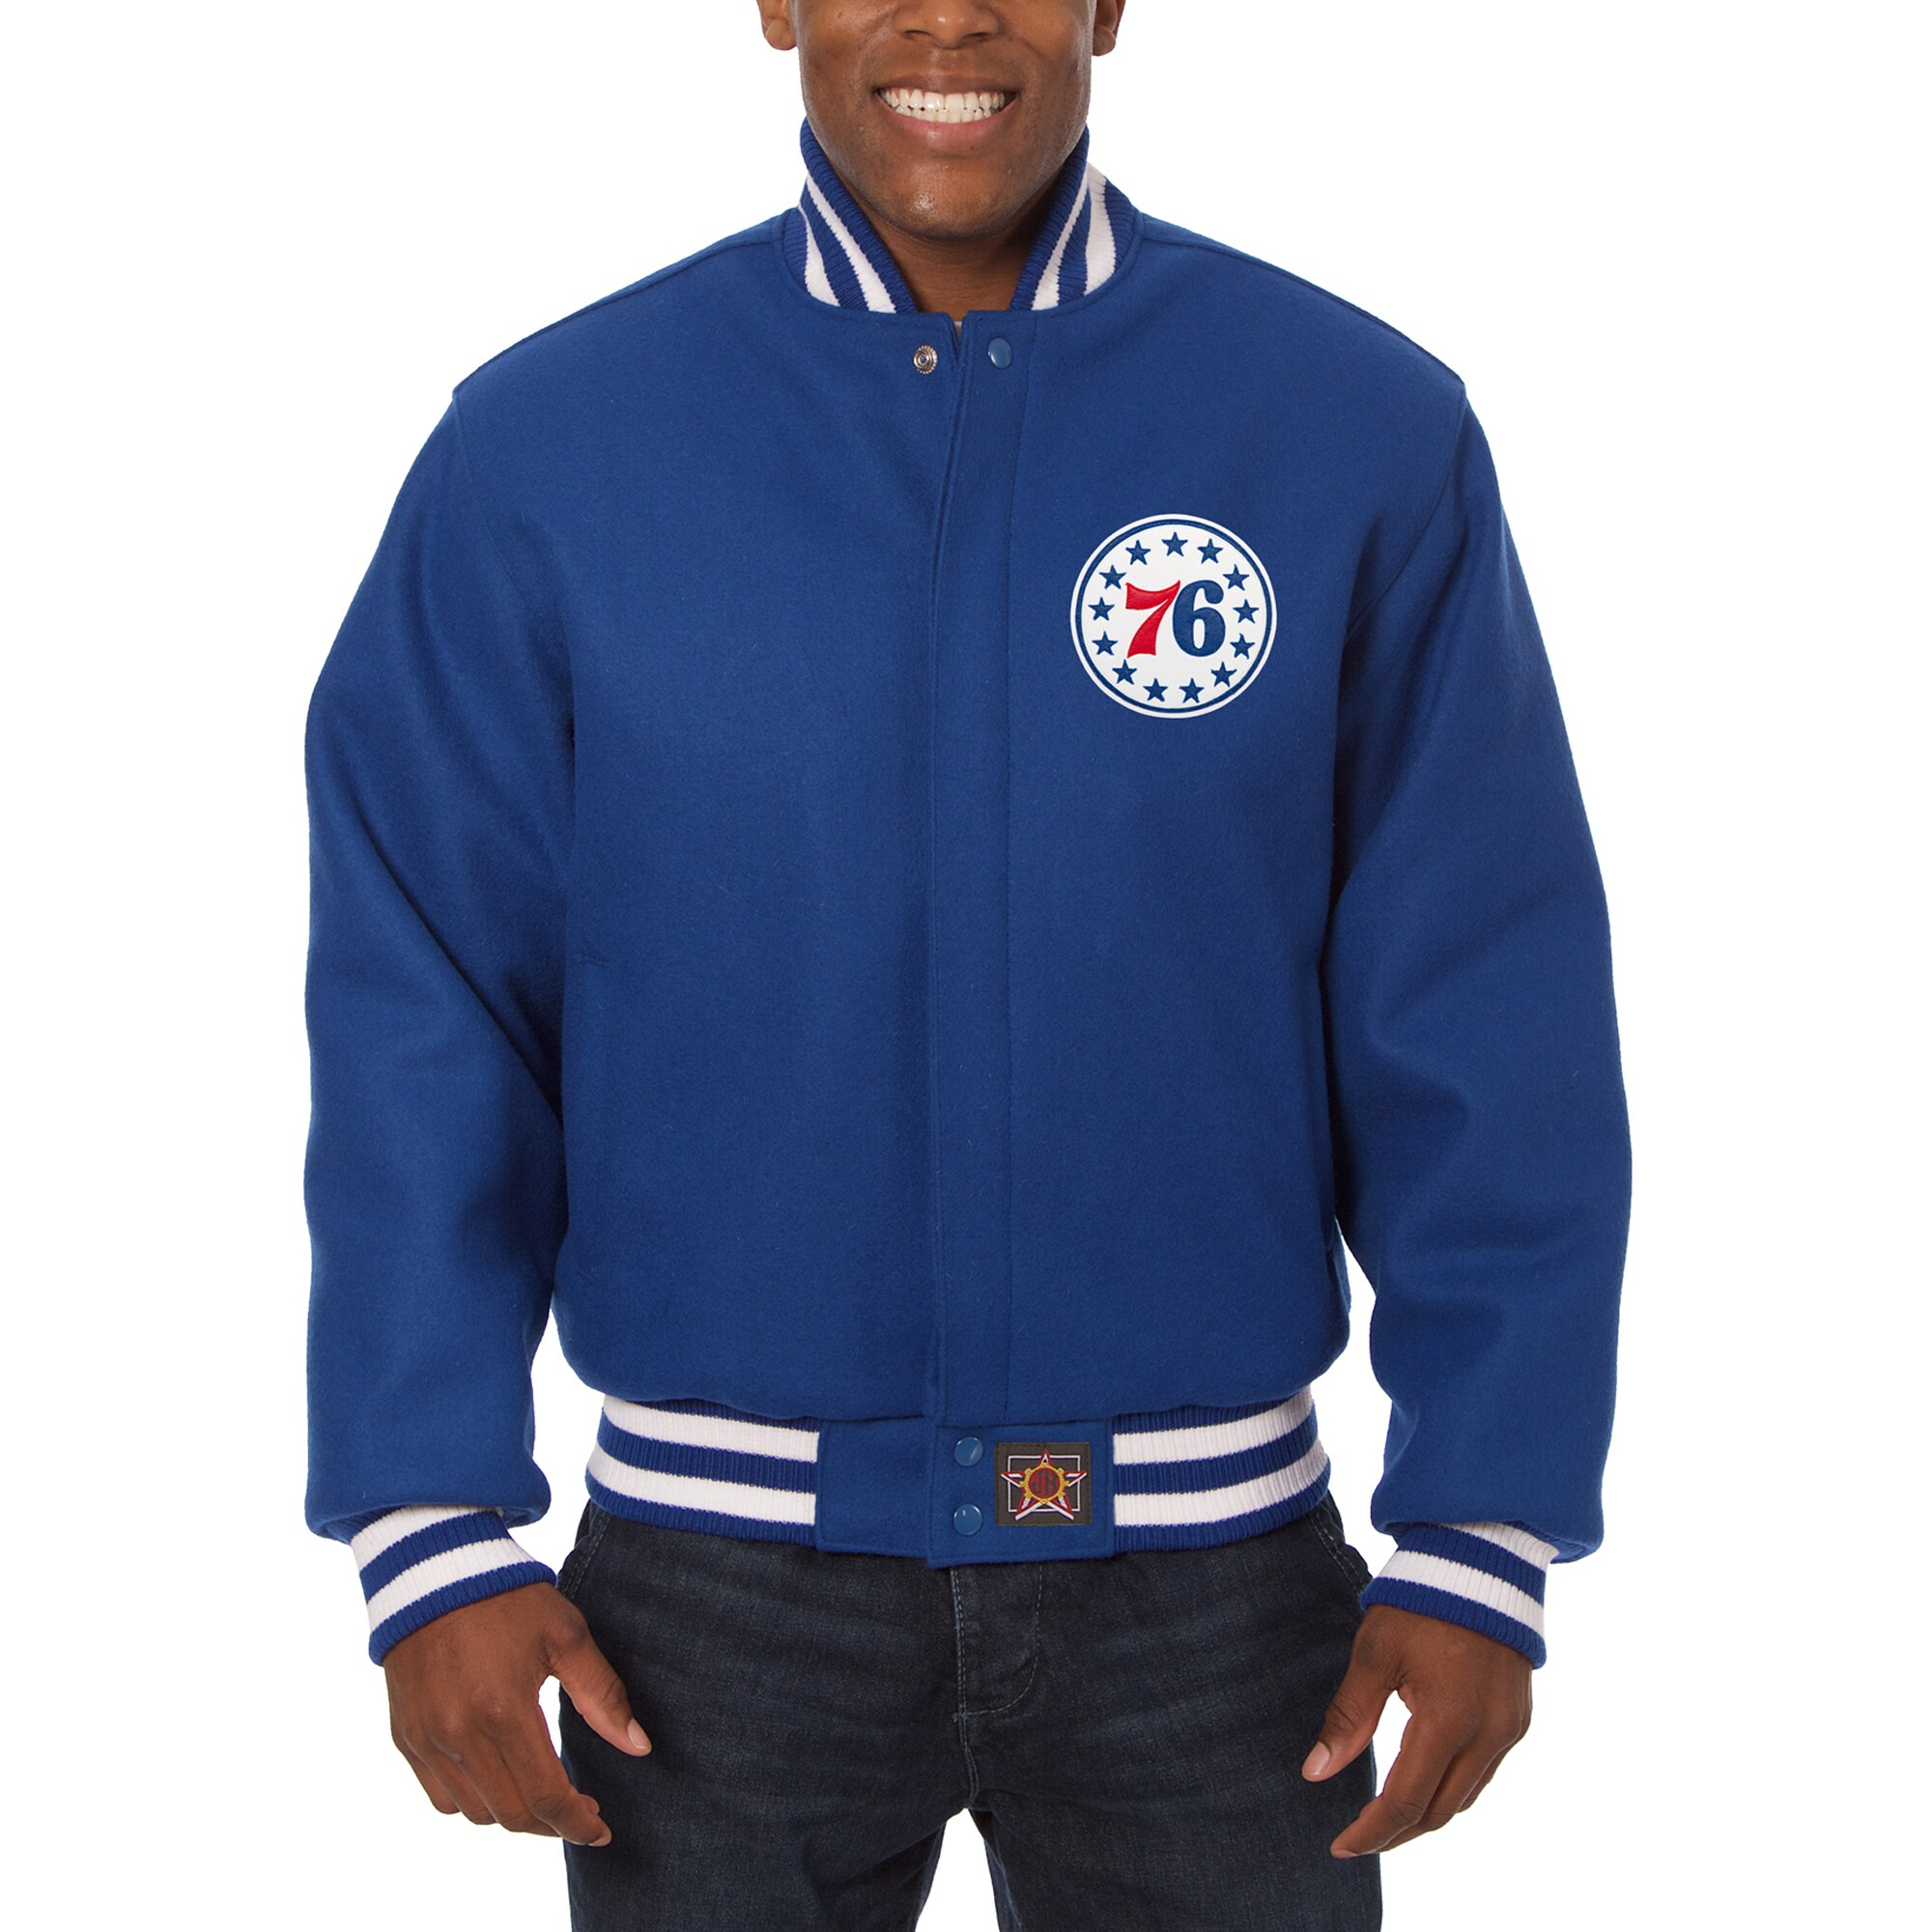 Philadelphia 76ers JH Design Big & Tall All Wool Jacket with Leather Logo - Royal